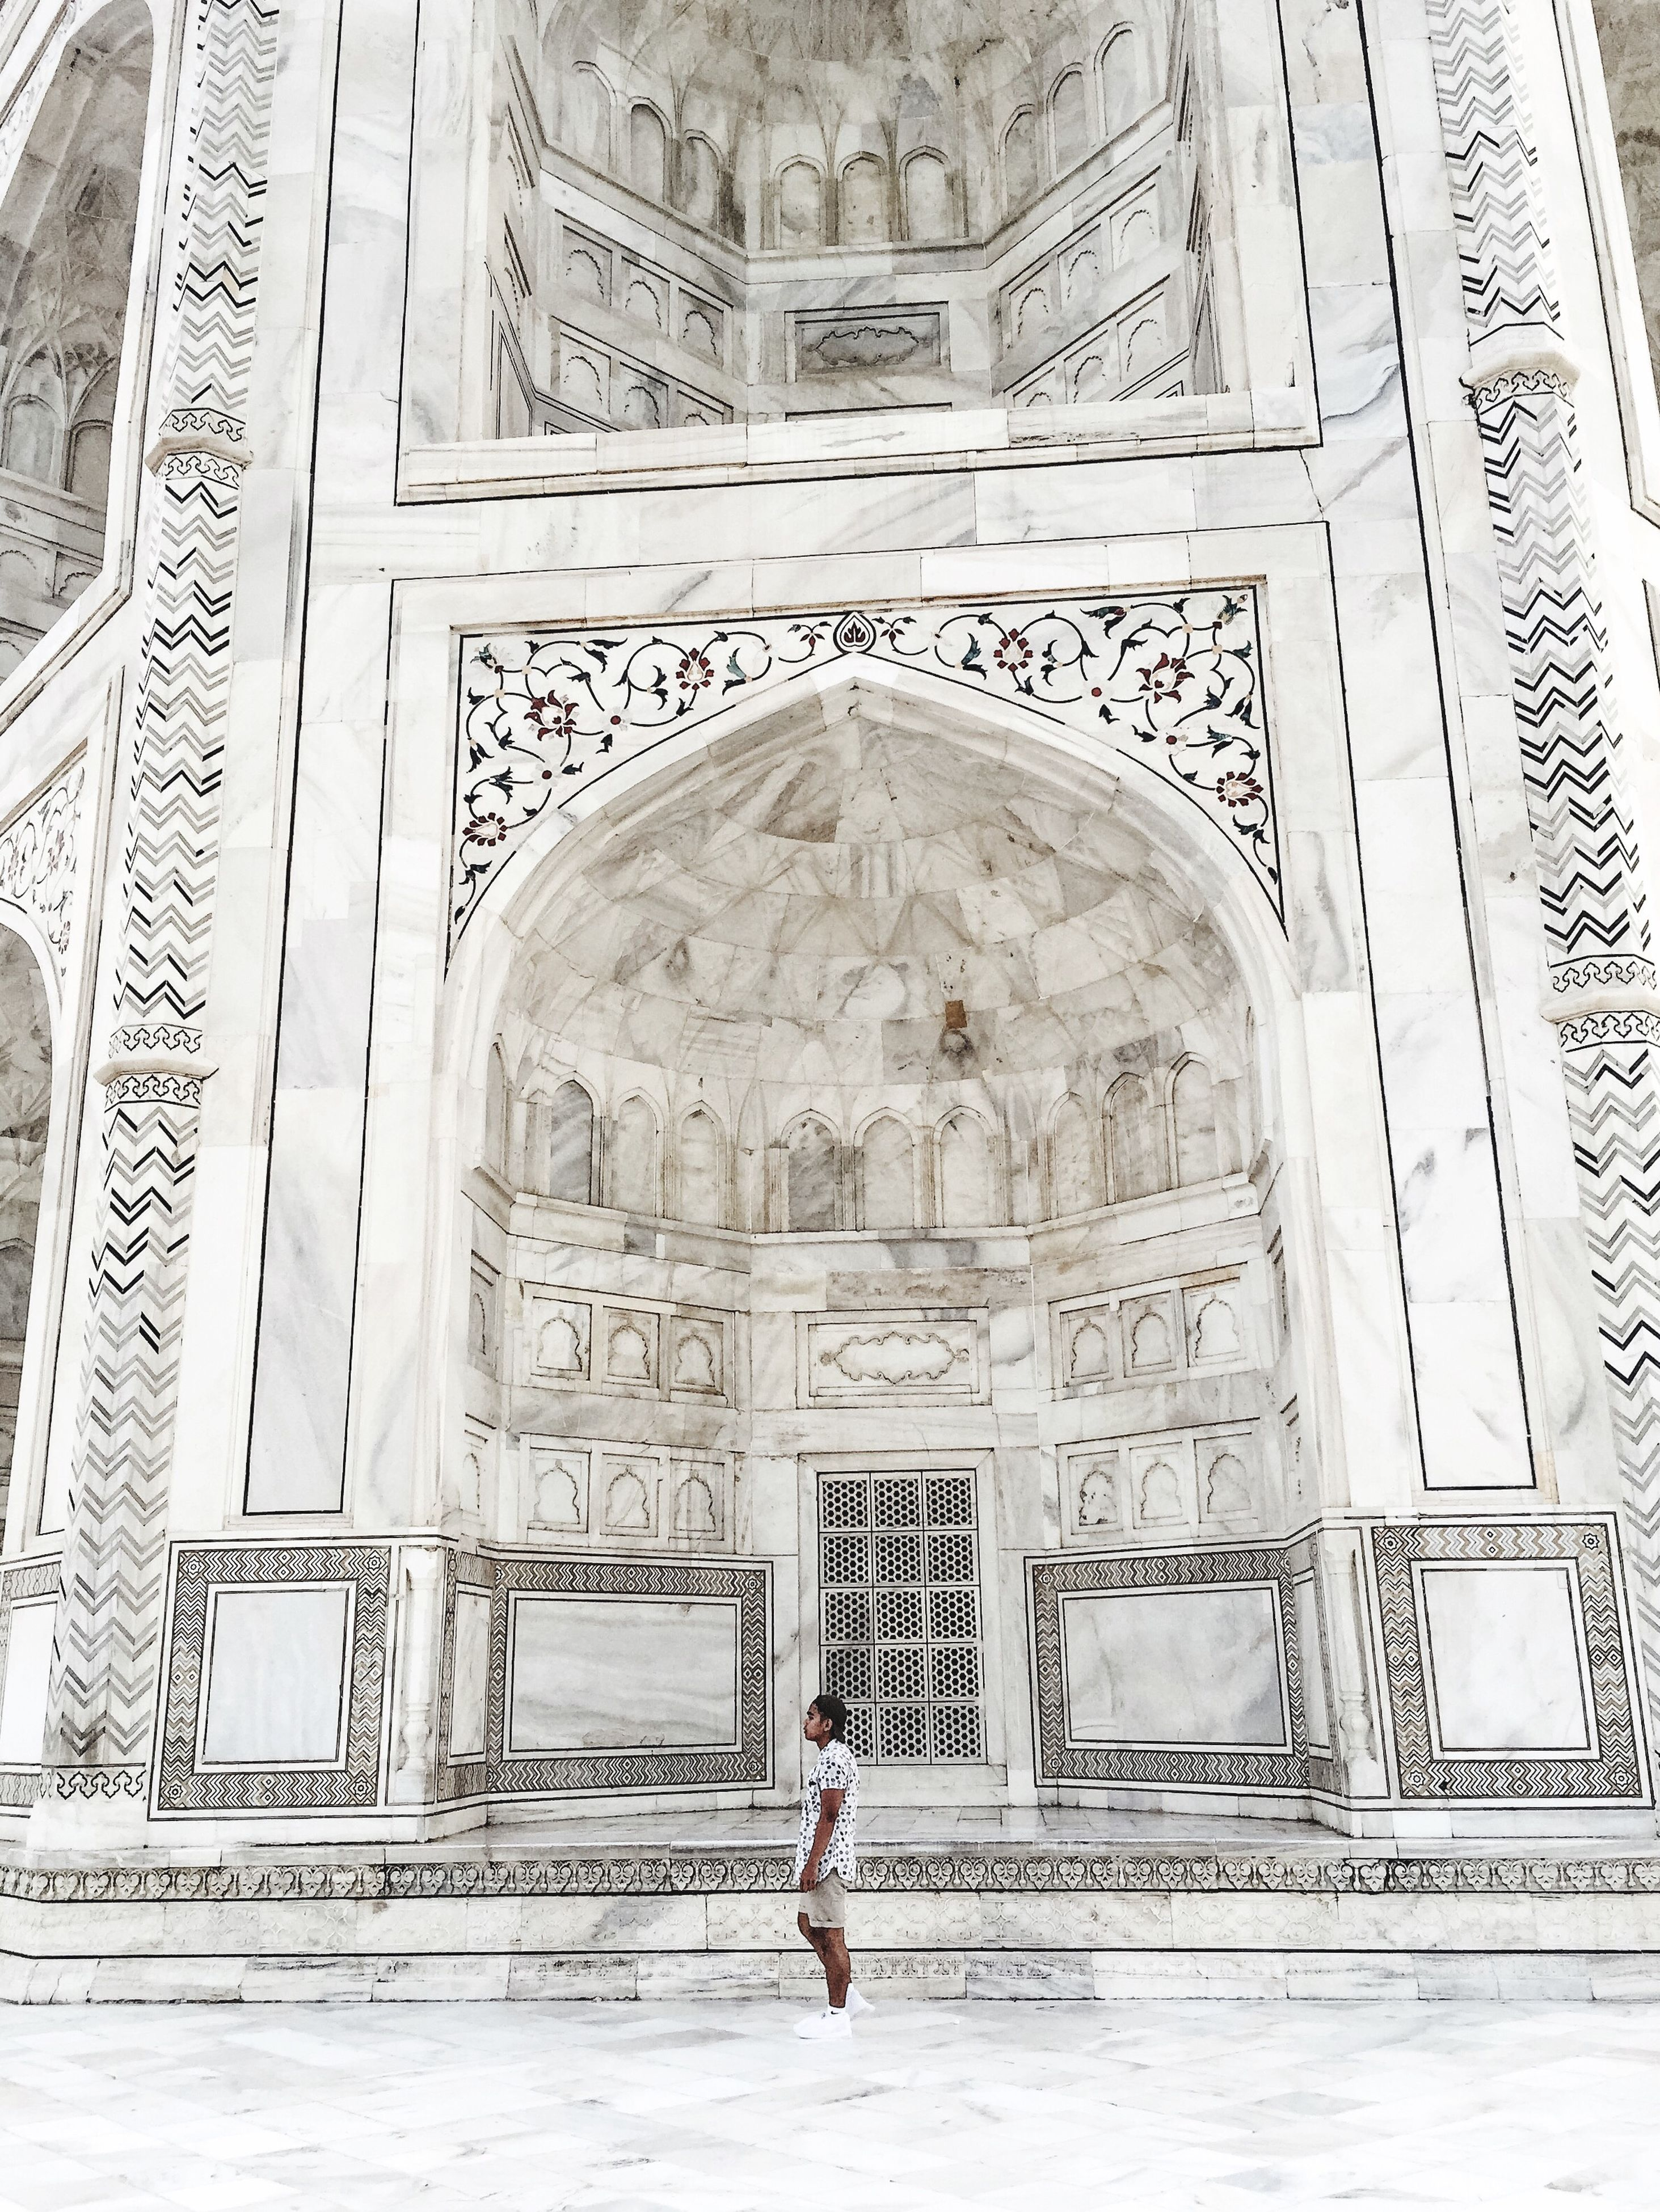 architecture, arch, built structure, indoors, history, spirituality, standing, place of worship, entrance, the past, ancient, day, archway, facade, creativity, mausoleum